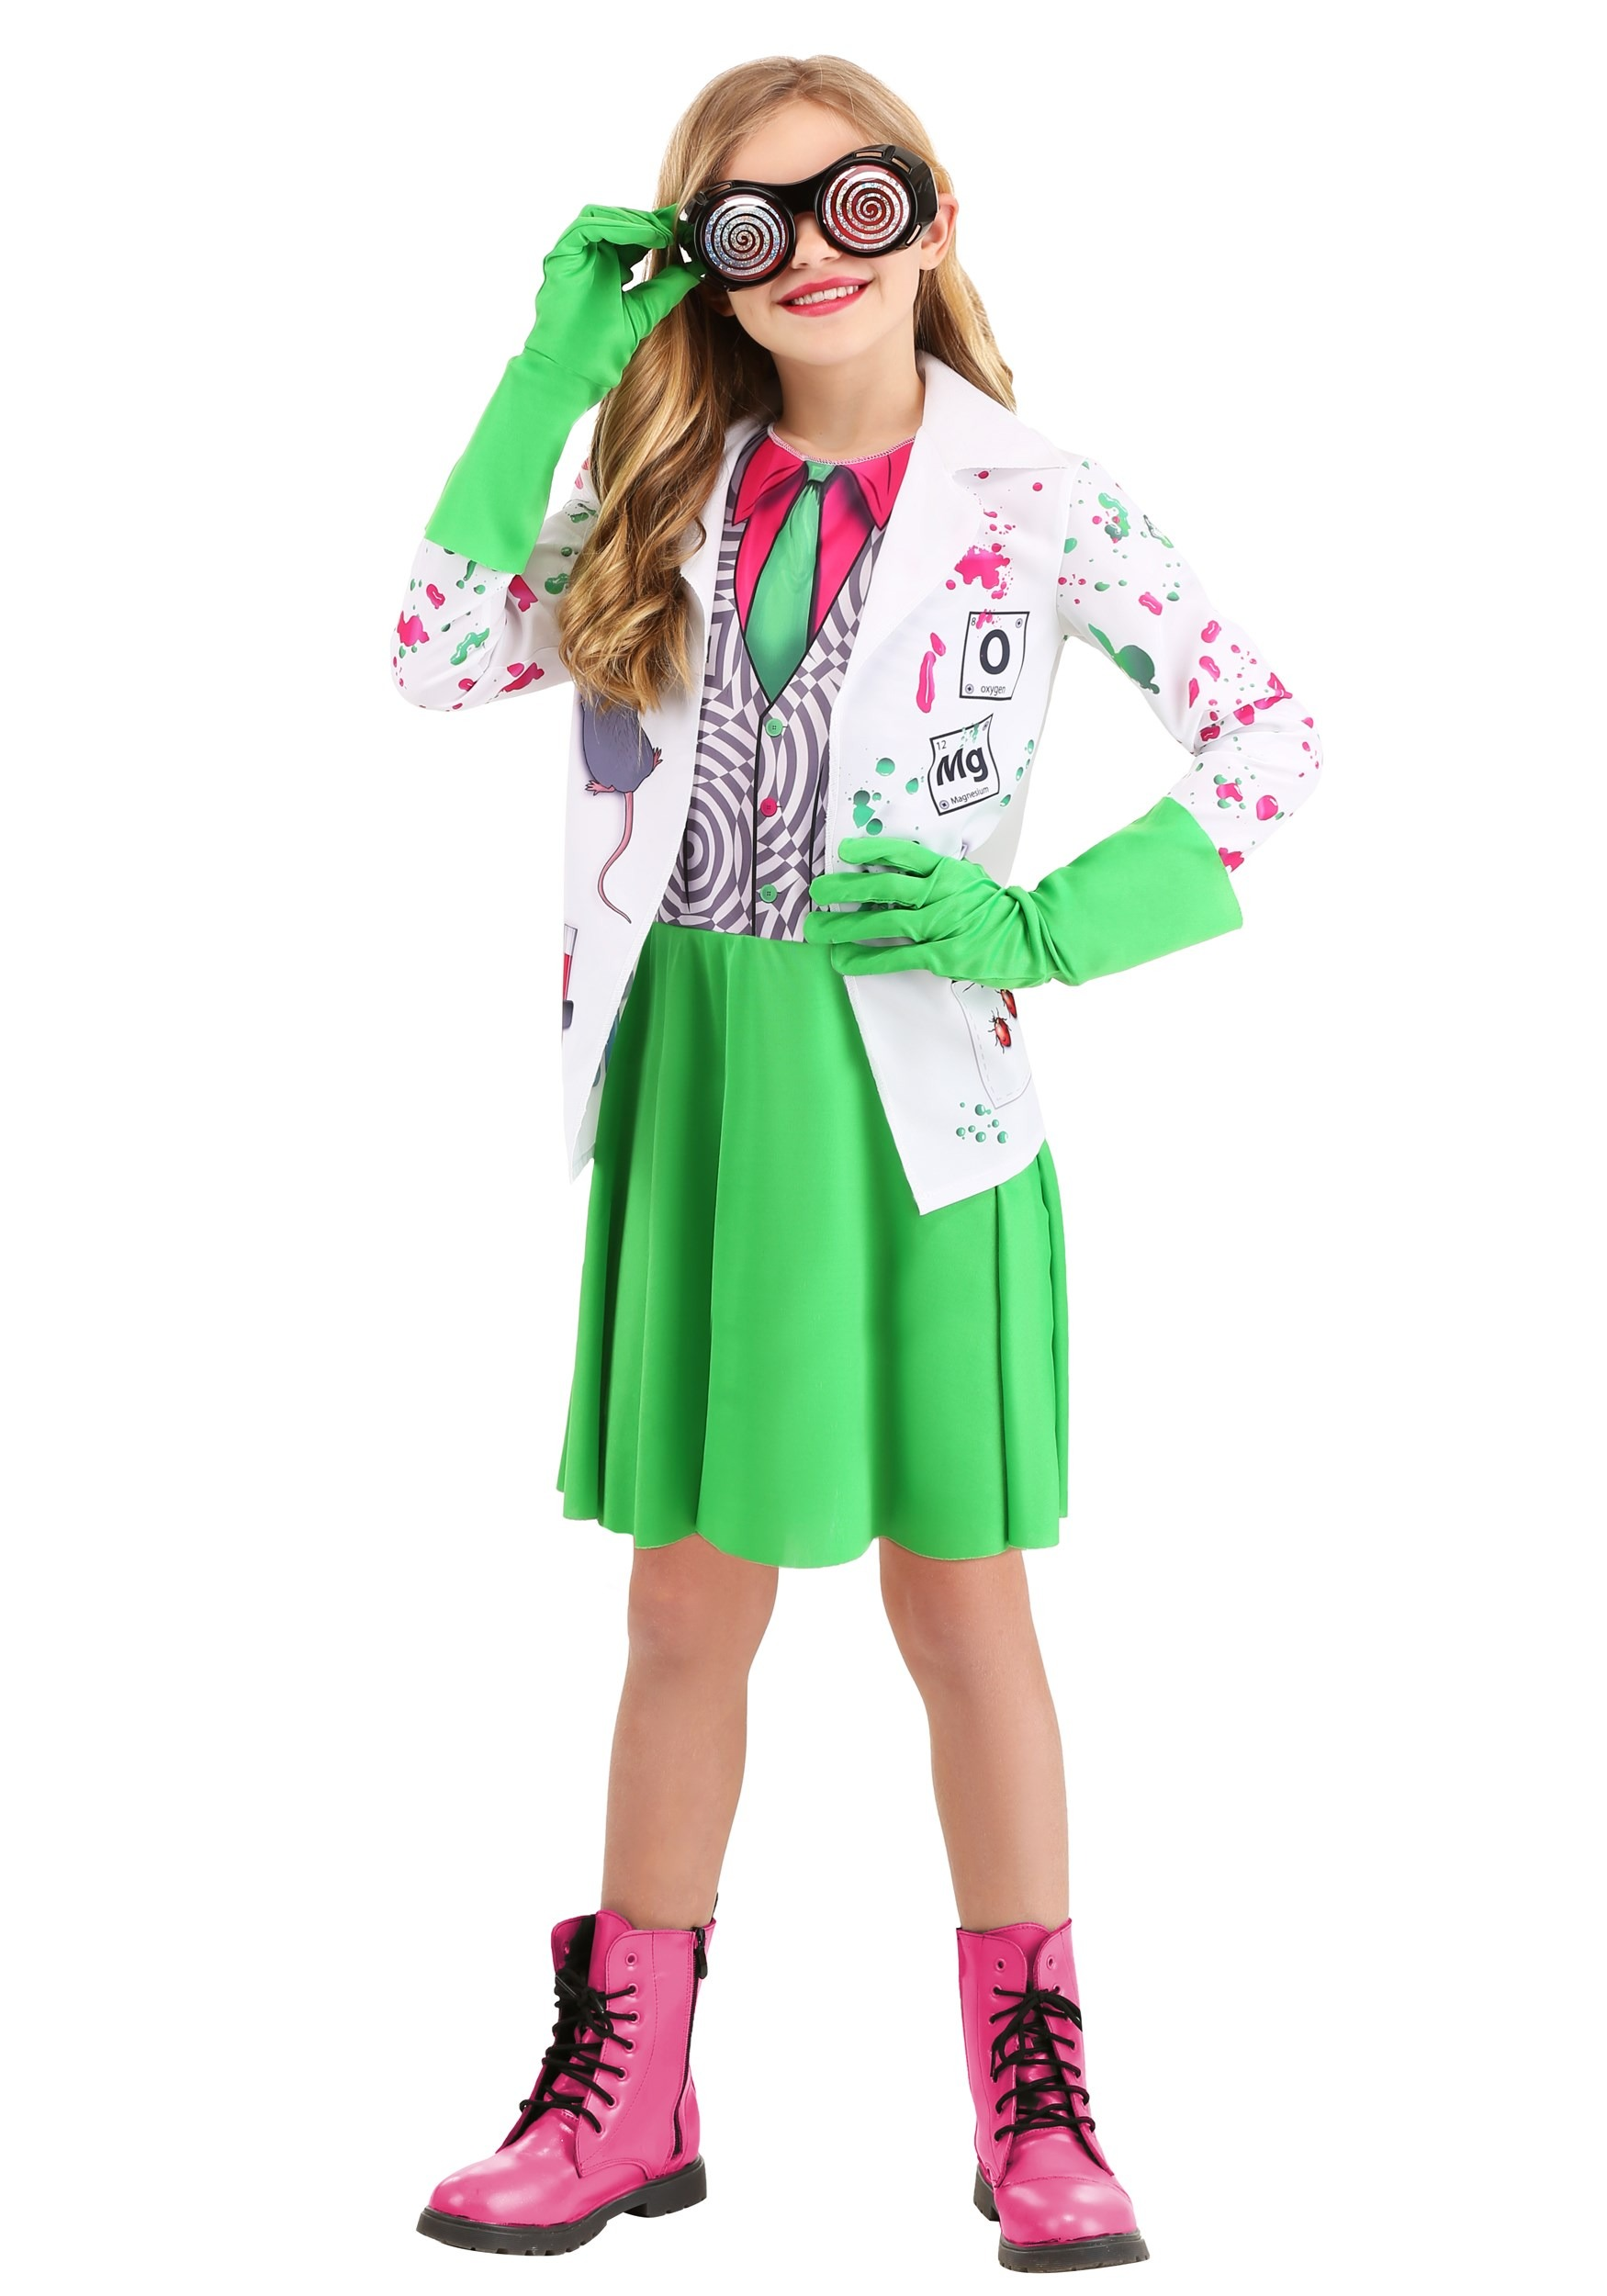 Mad Scientist Costume for Kid's